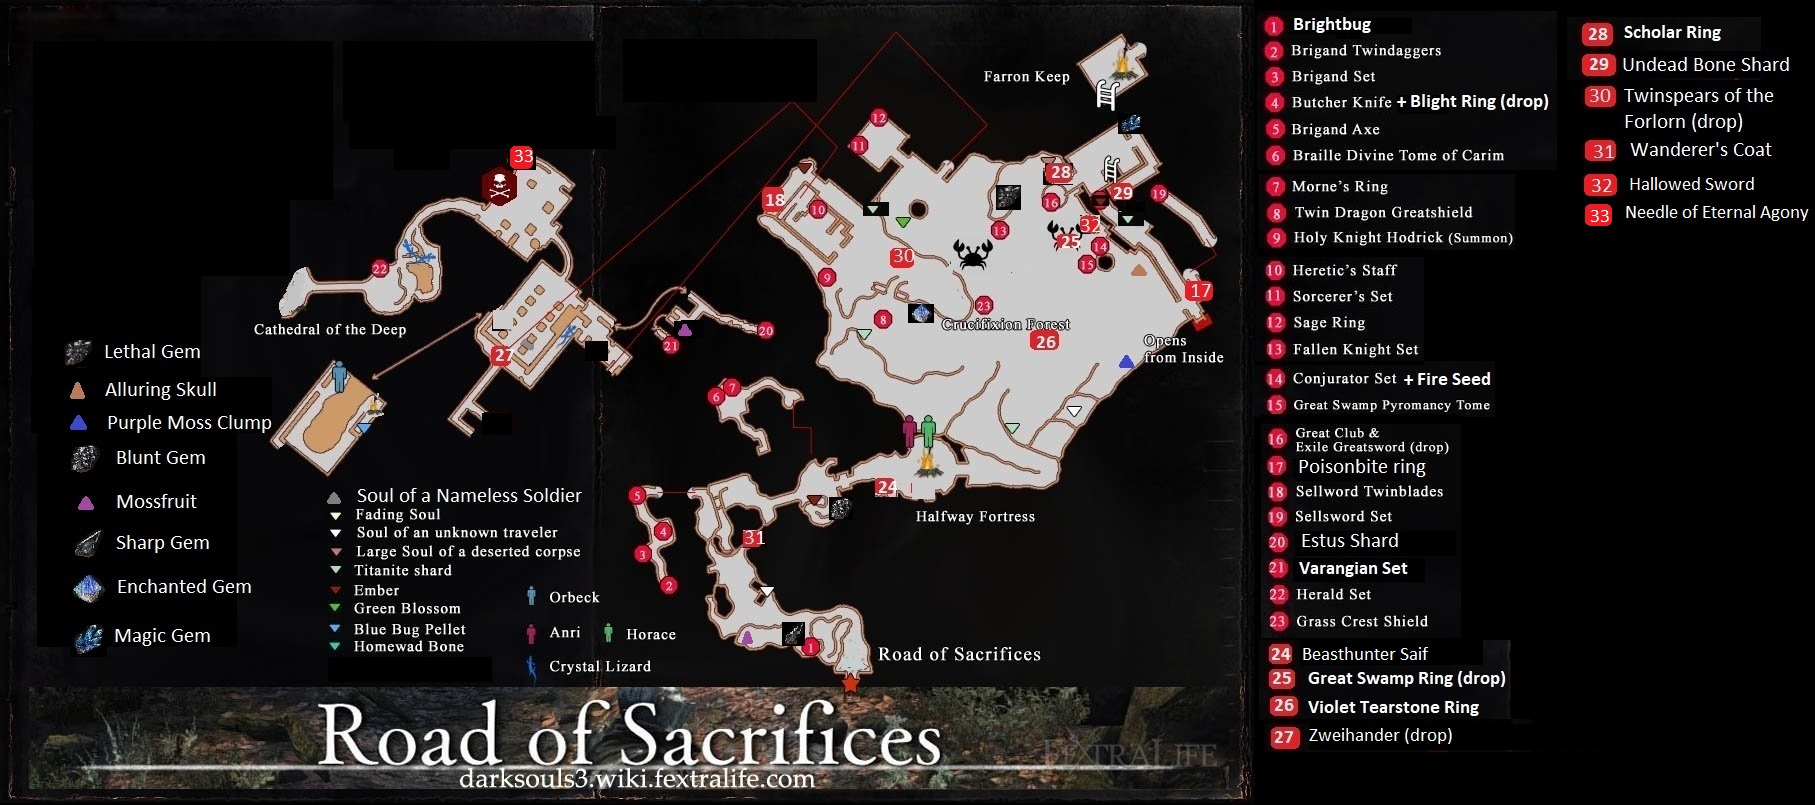 road_of_sacrifices_map.jpg